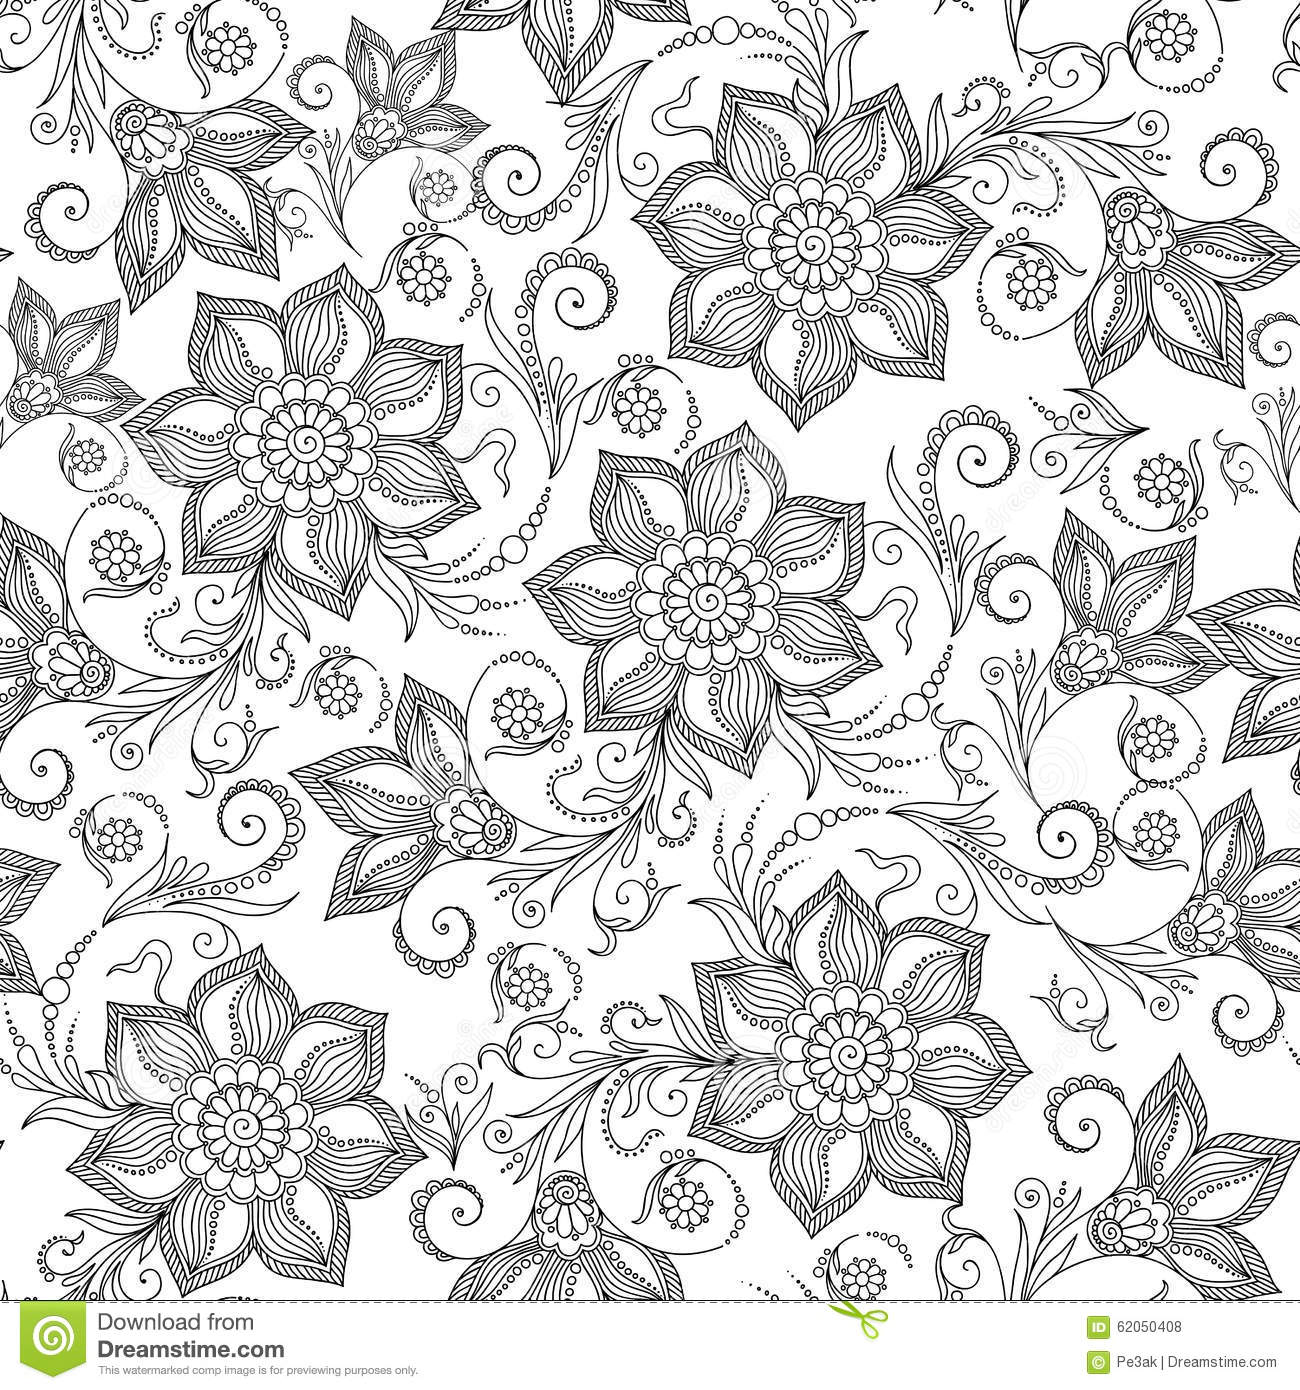 Coloring book for me full - Royalty Free Vector Download Pattern For Coloring Book